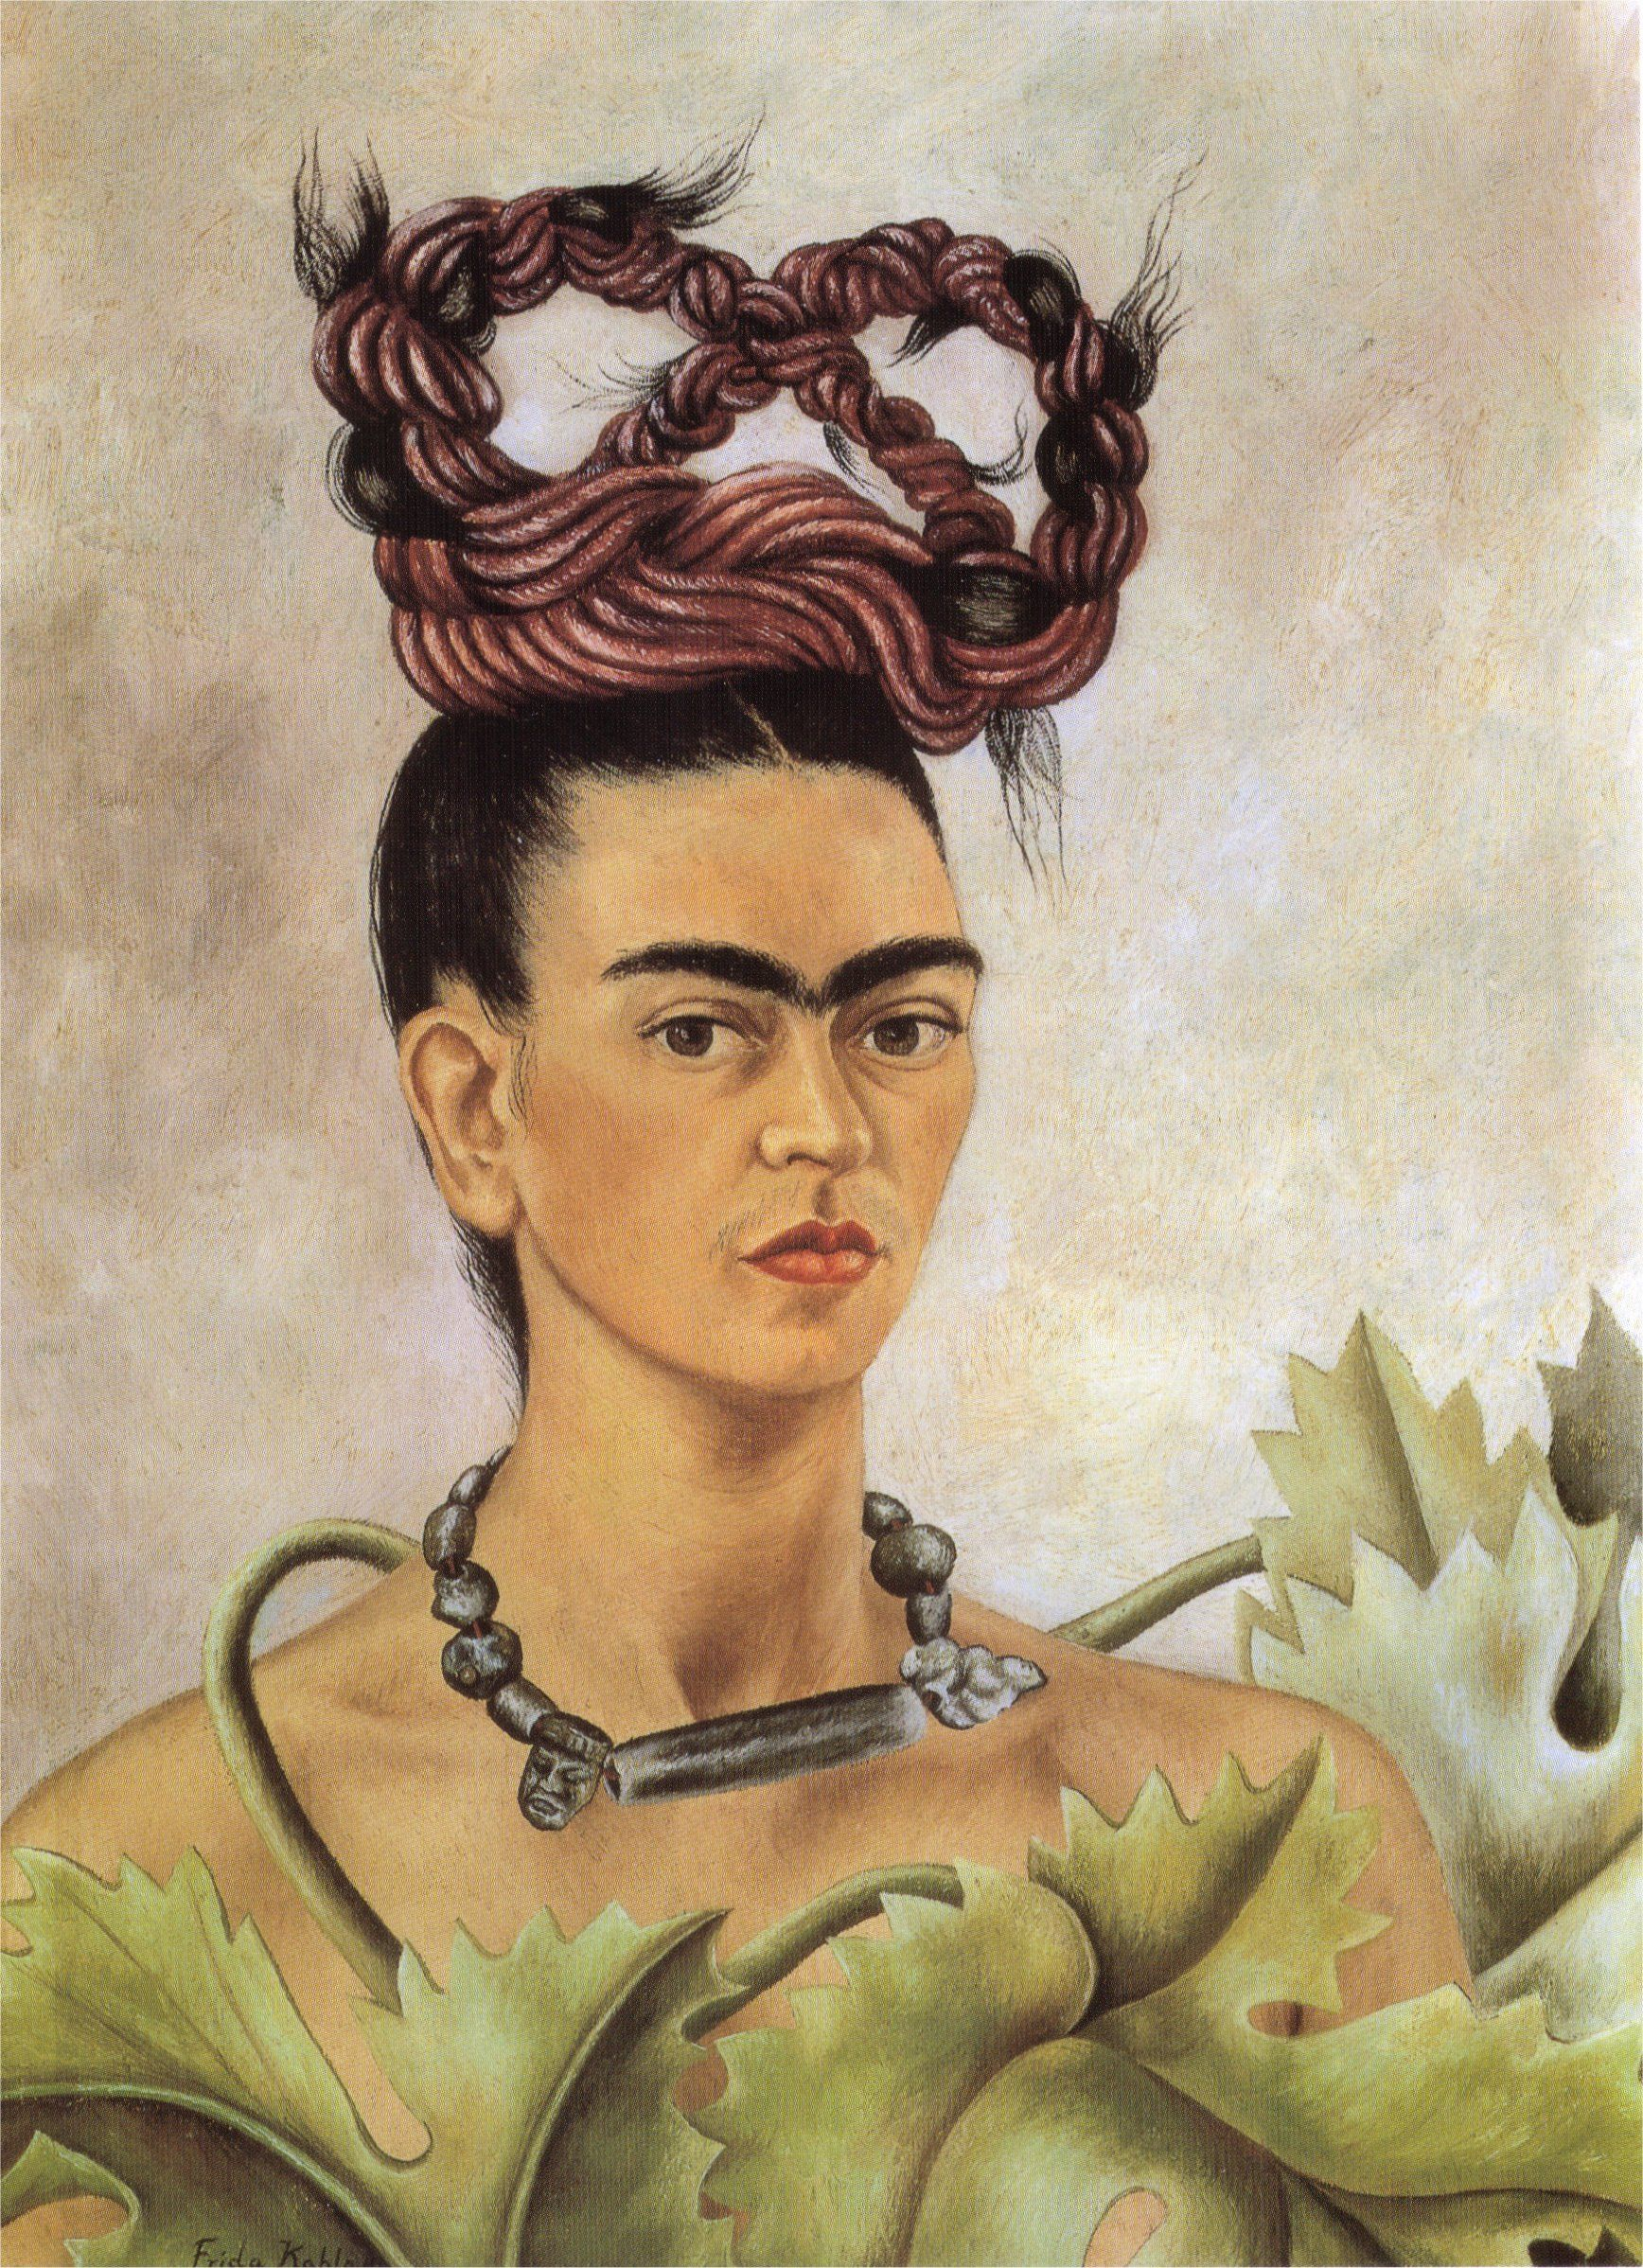 Frida Kahlo Pinturas Frida Kahlo Artwork Self Portrait With Braid Frida